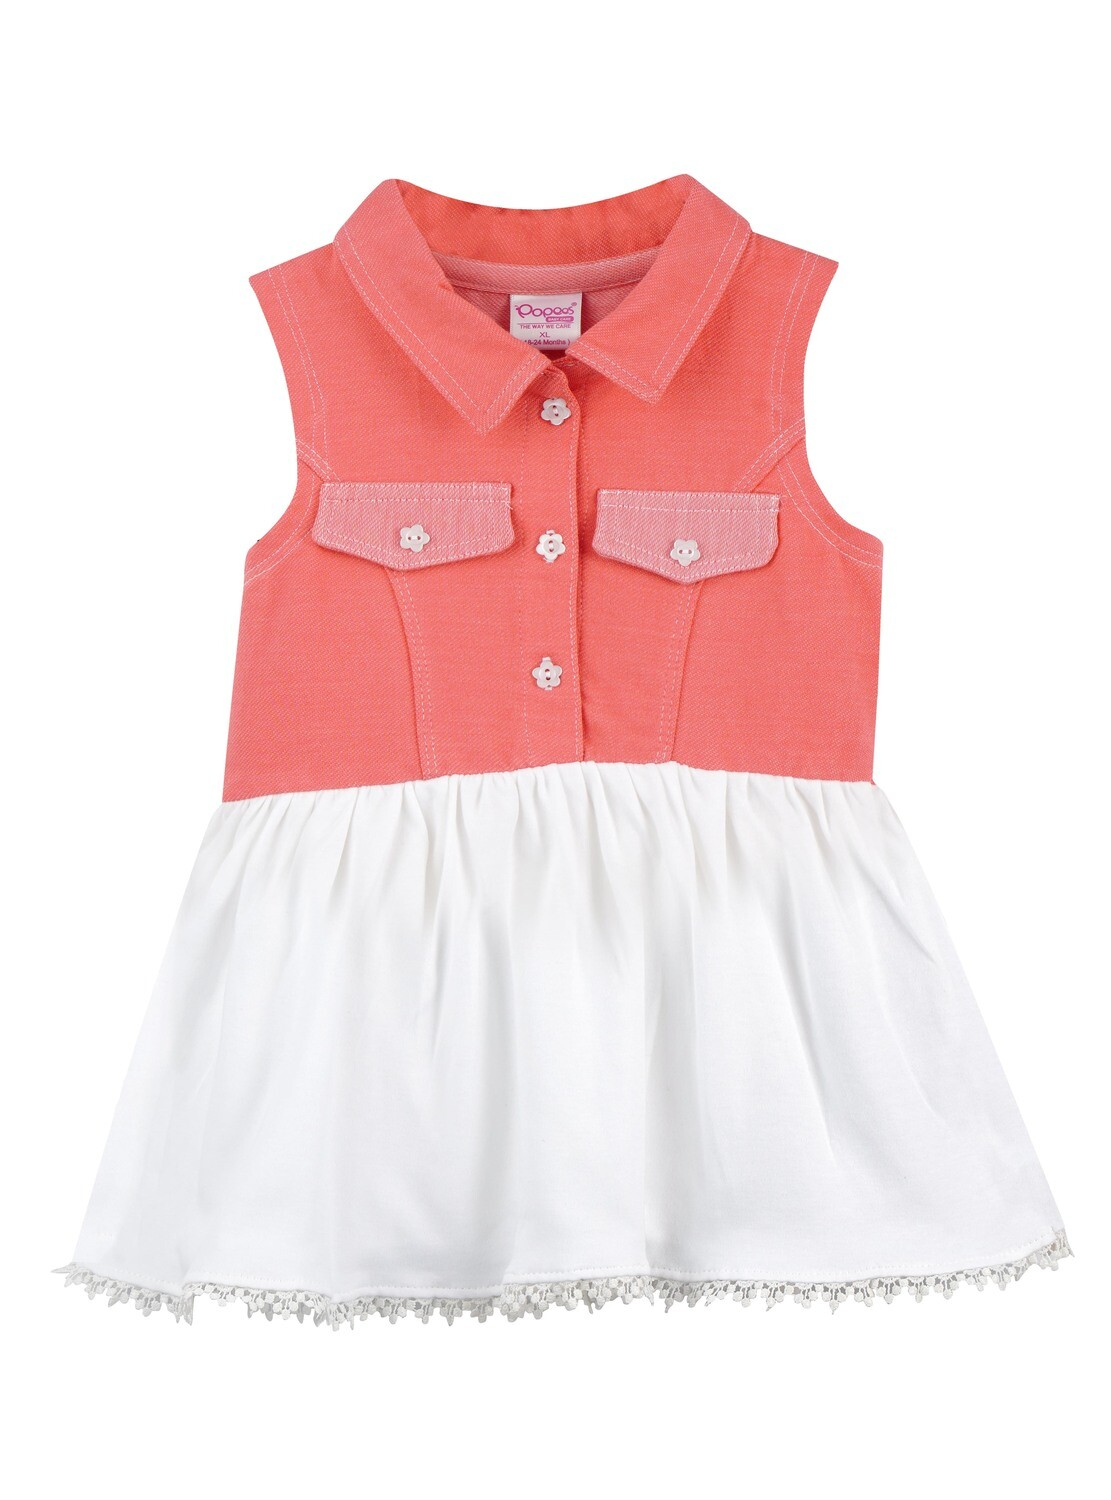 VAANI Peach Sleeveless Frock and Panties for Baby Girls